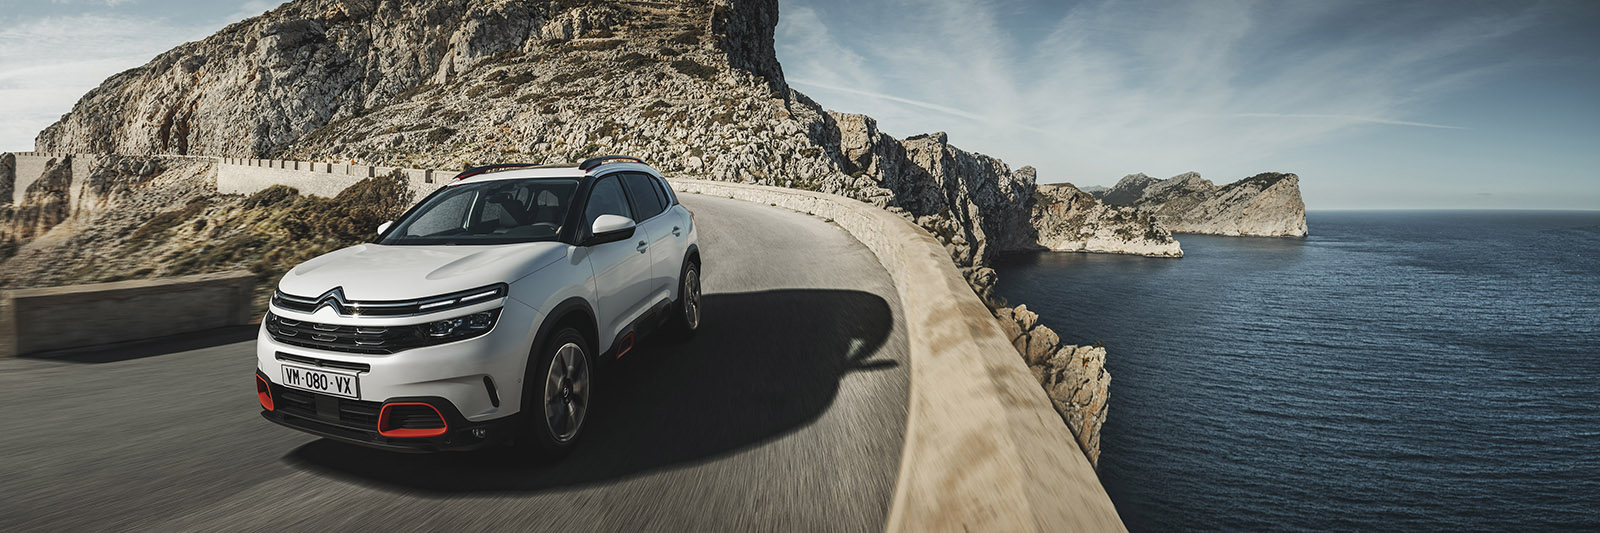 Citroen onthult nieuwe SUV C5 Aircross